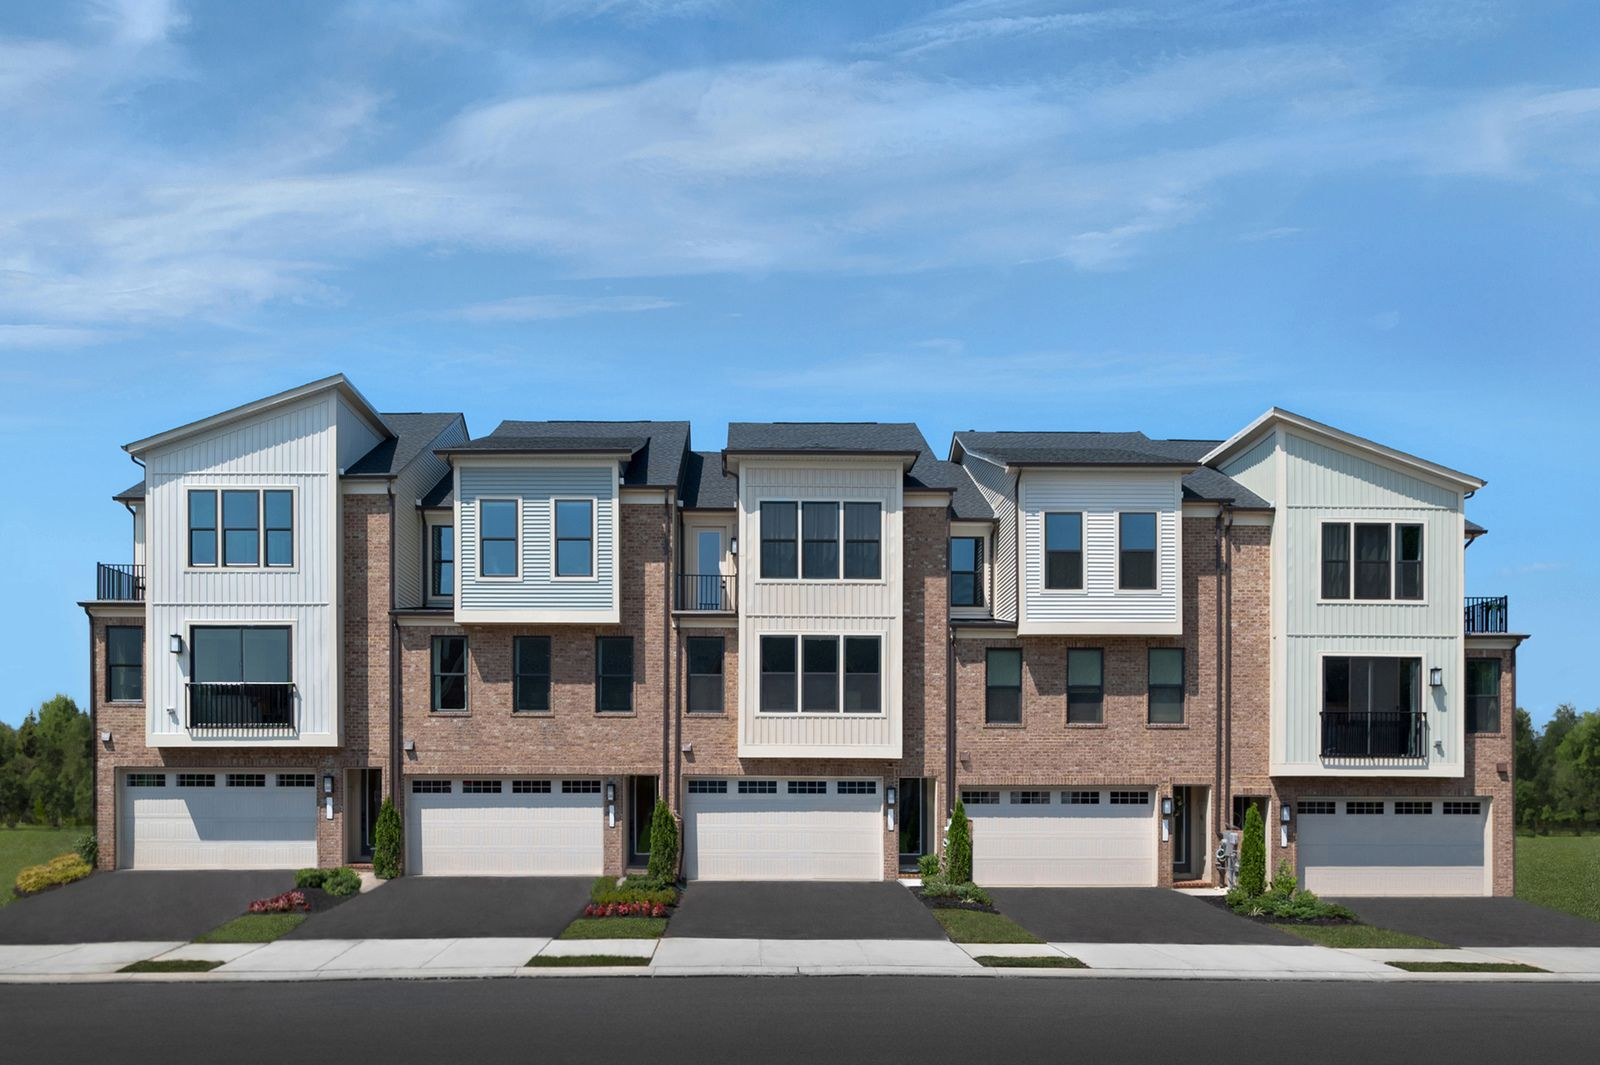 SURROUNDED BY NATURE, YET CLOSE TO EVERYTHING:Maryland's most gorgeous collection of luxury townhomes is now selling. Come discover Columbia's Cedar Creek and start living your best life. Schedule a visit today!